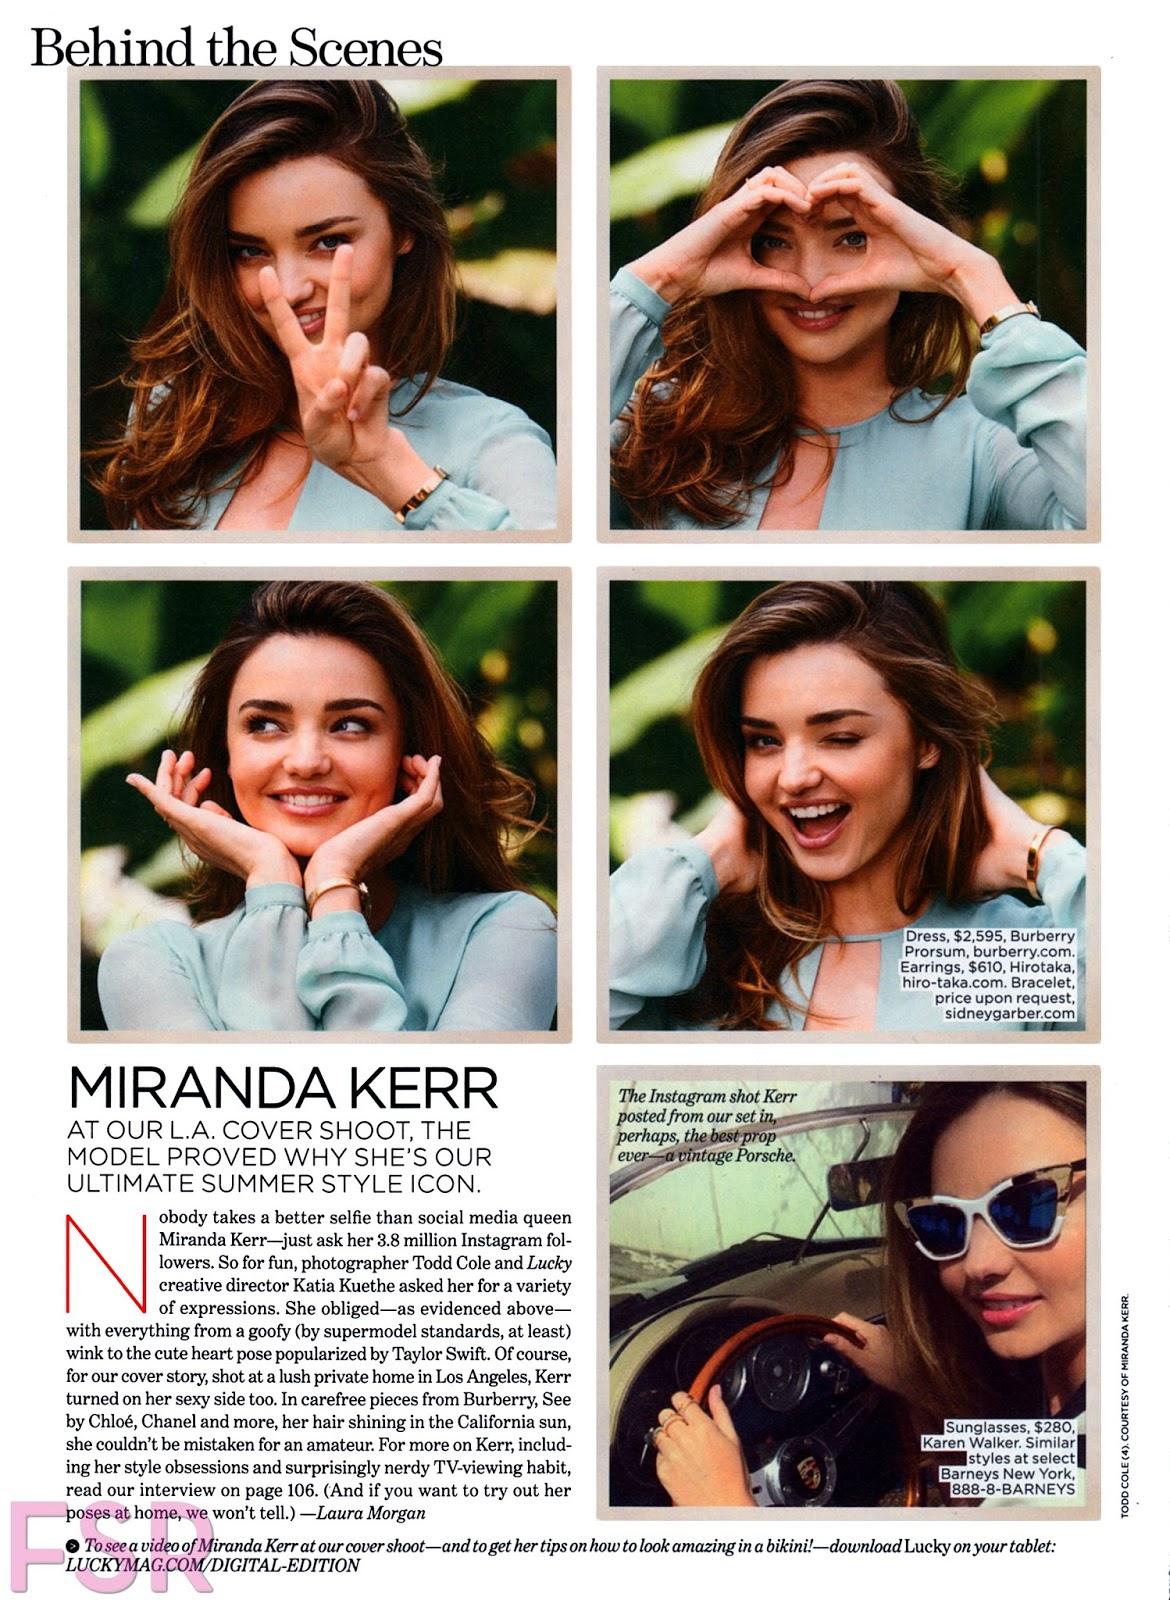 Miranda Kerr in a summery fashion shoot for Lucky Magazine June/July 2014